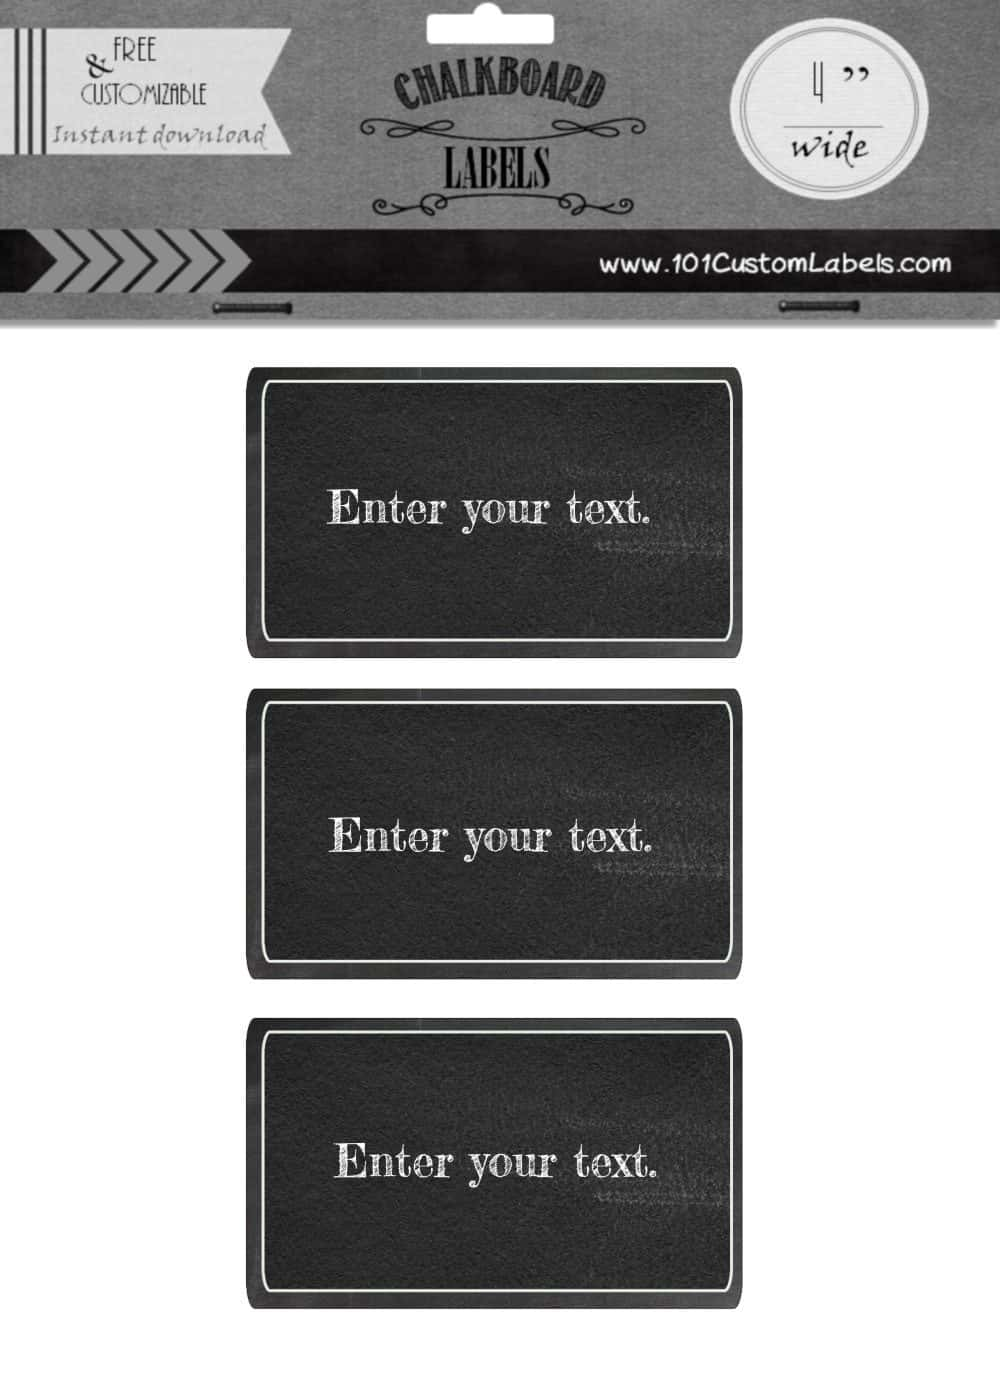 picture about Printable Chalkboard Labels named Absolutely free Custom made Rectangle Chalkboard Labels